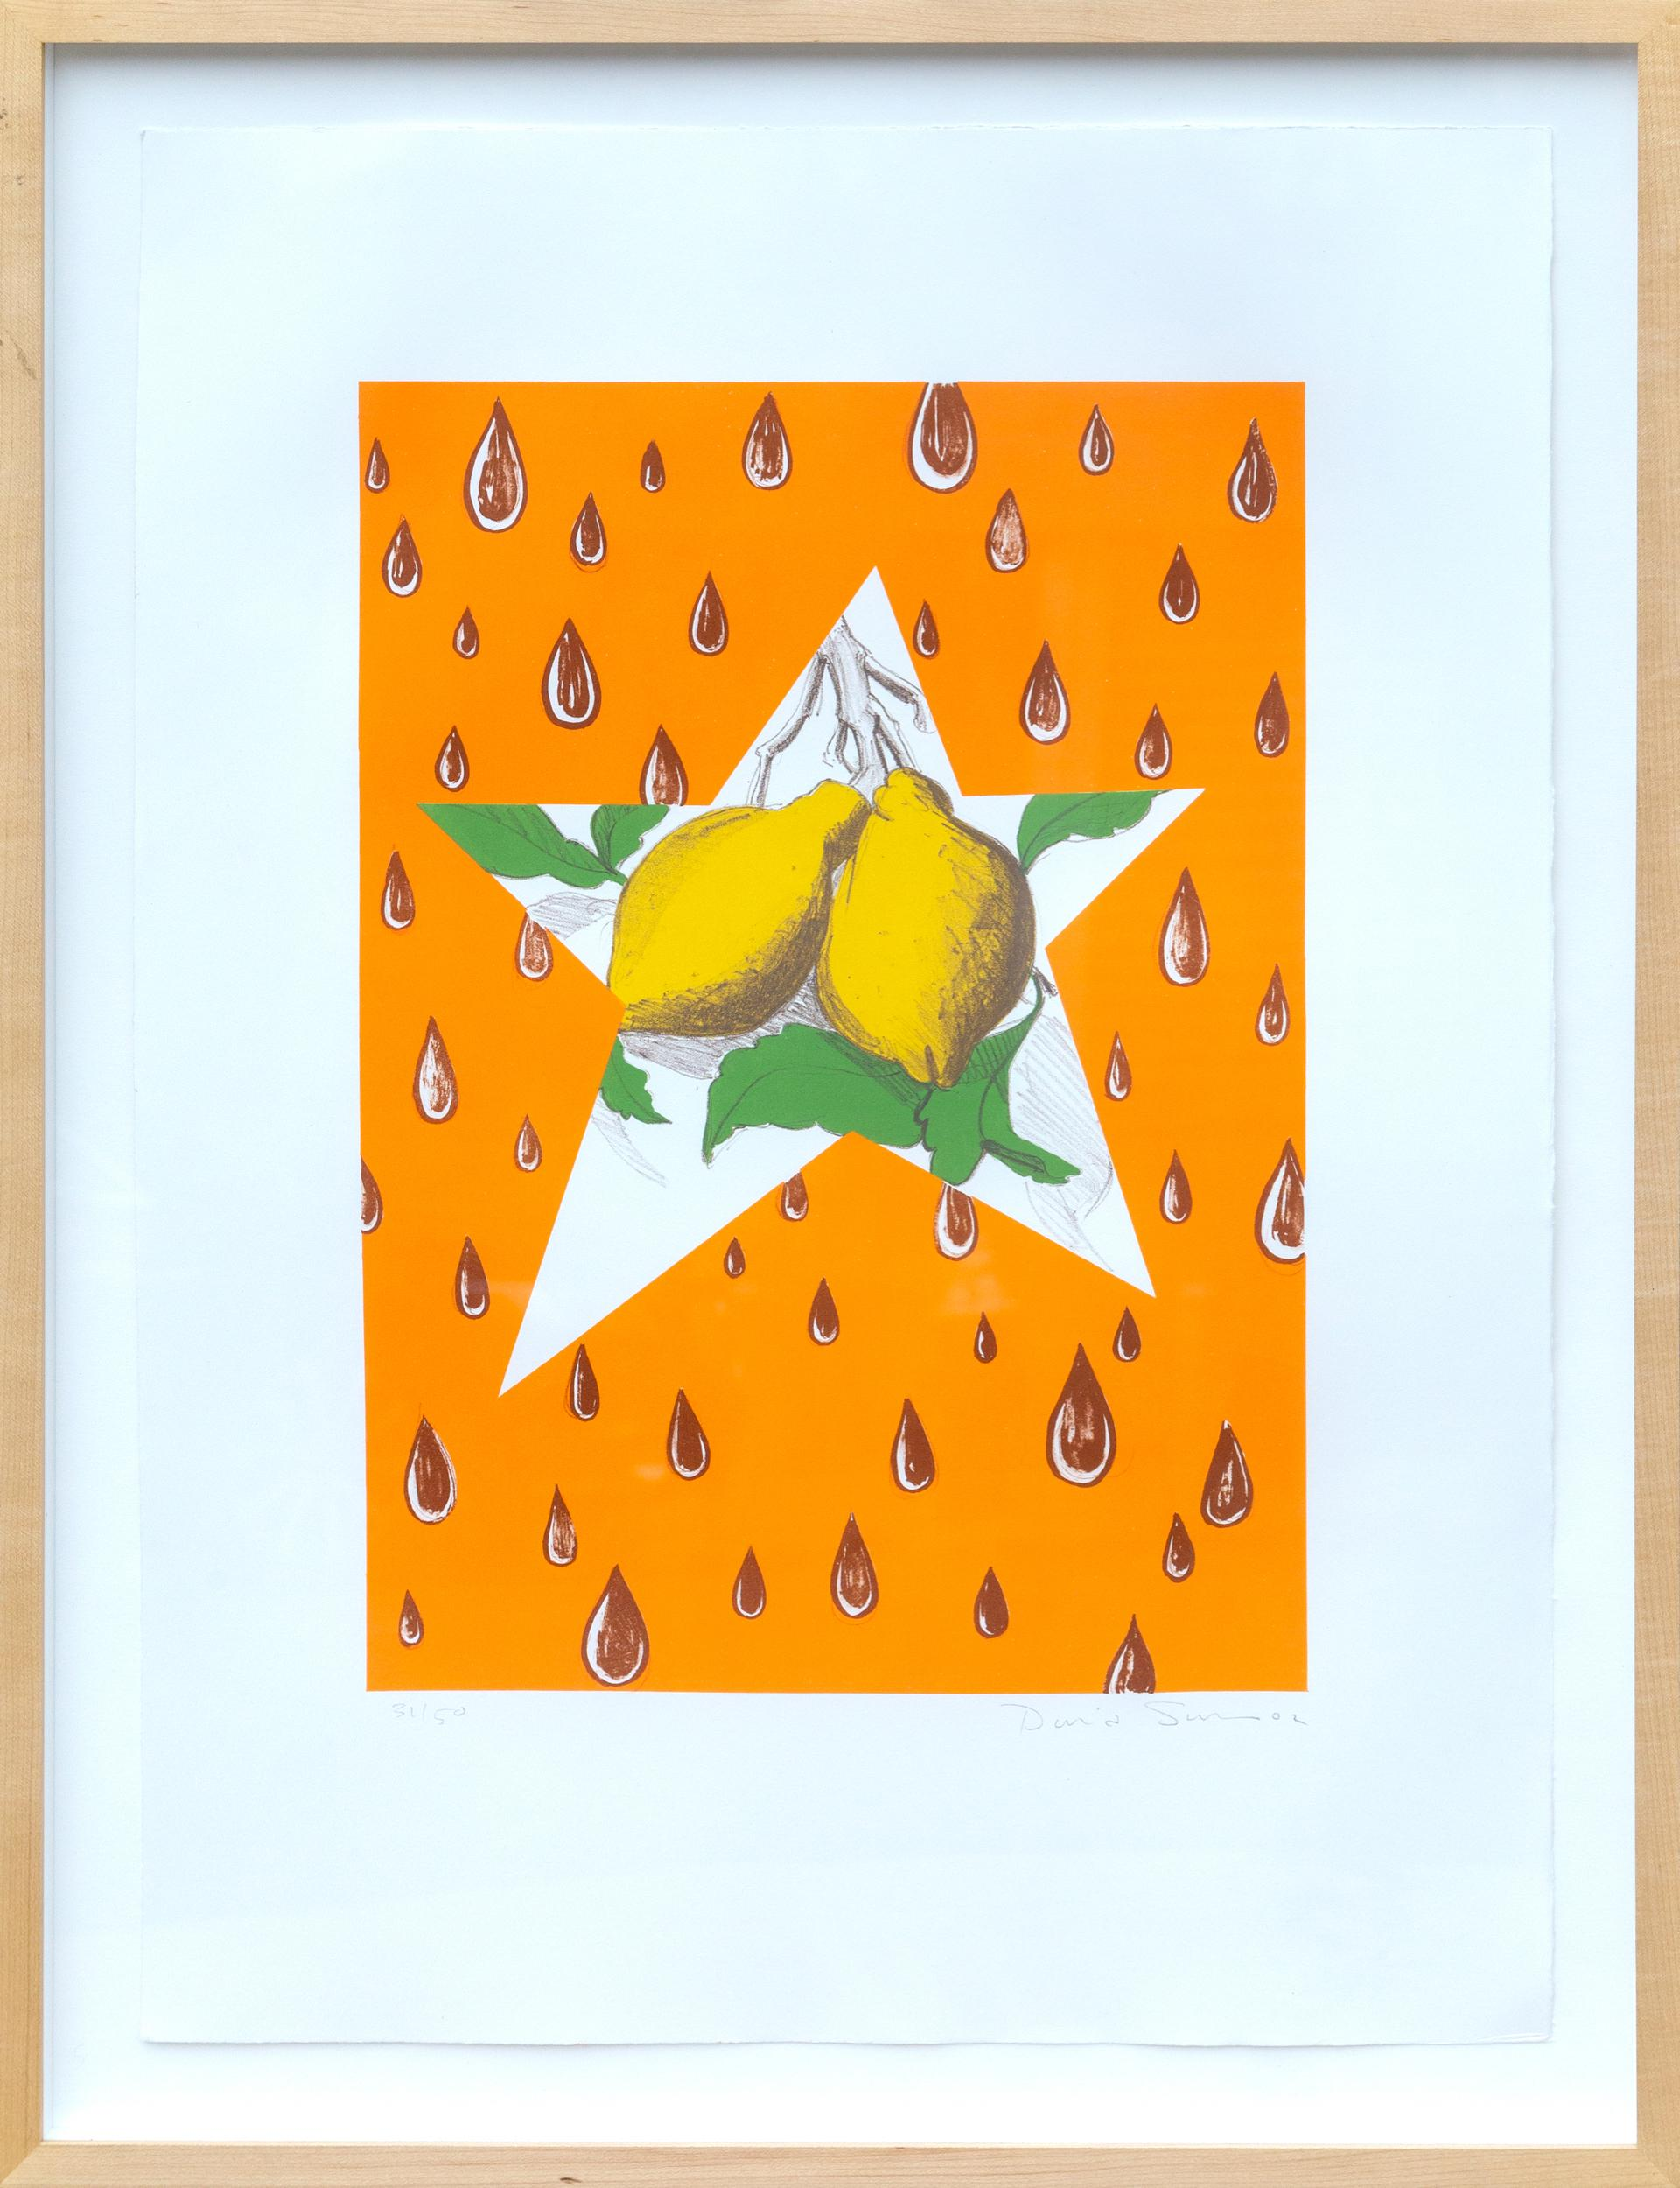 David Salle, The Lemon Twig, Lithograph